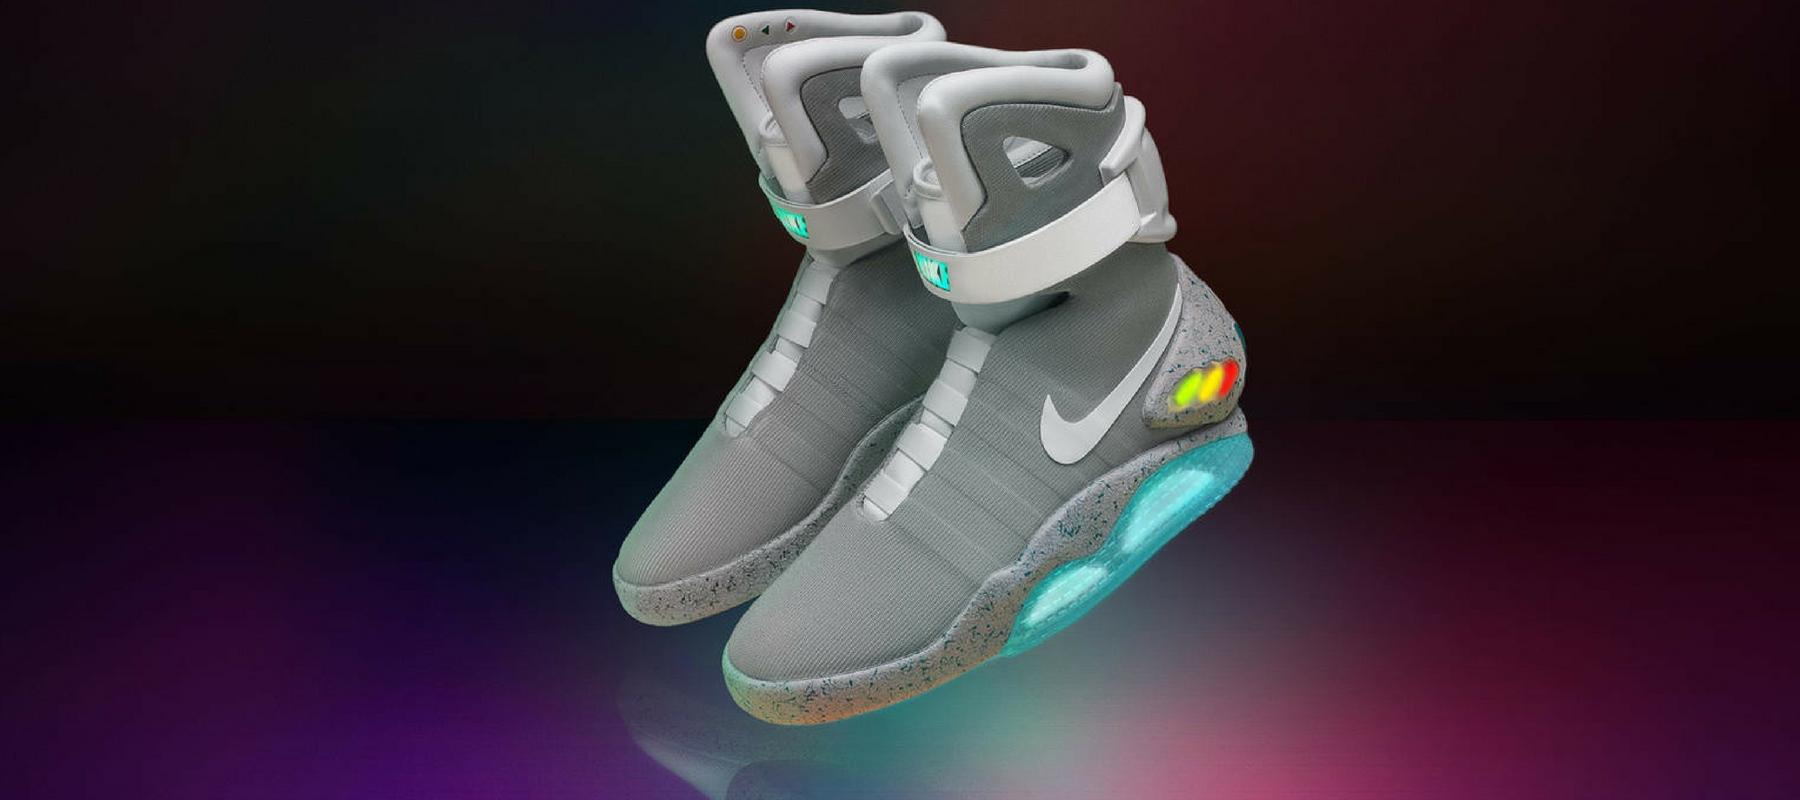 The 2016 Nike Mag